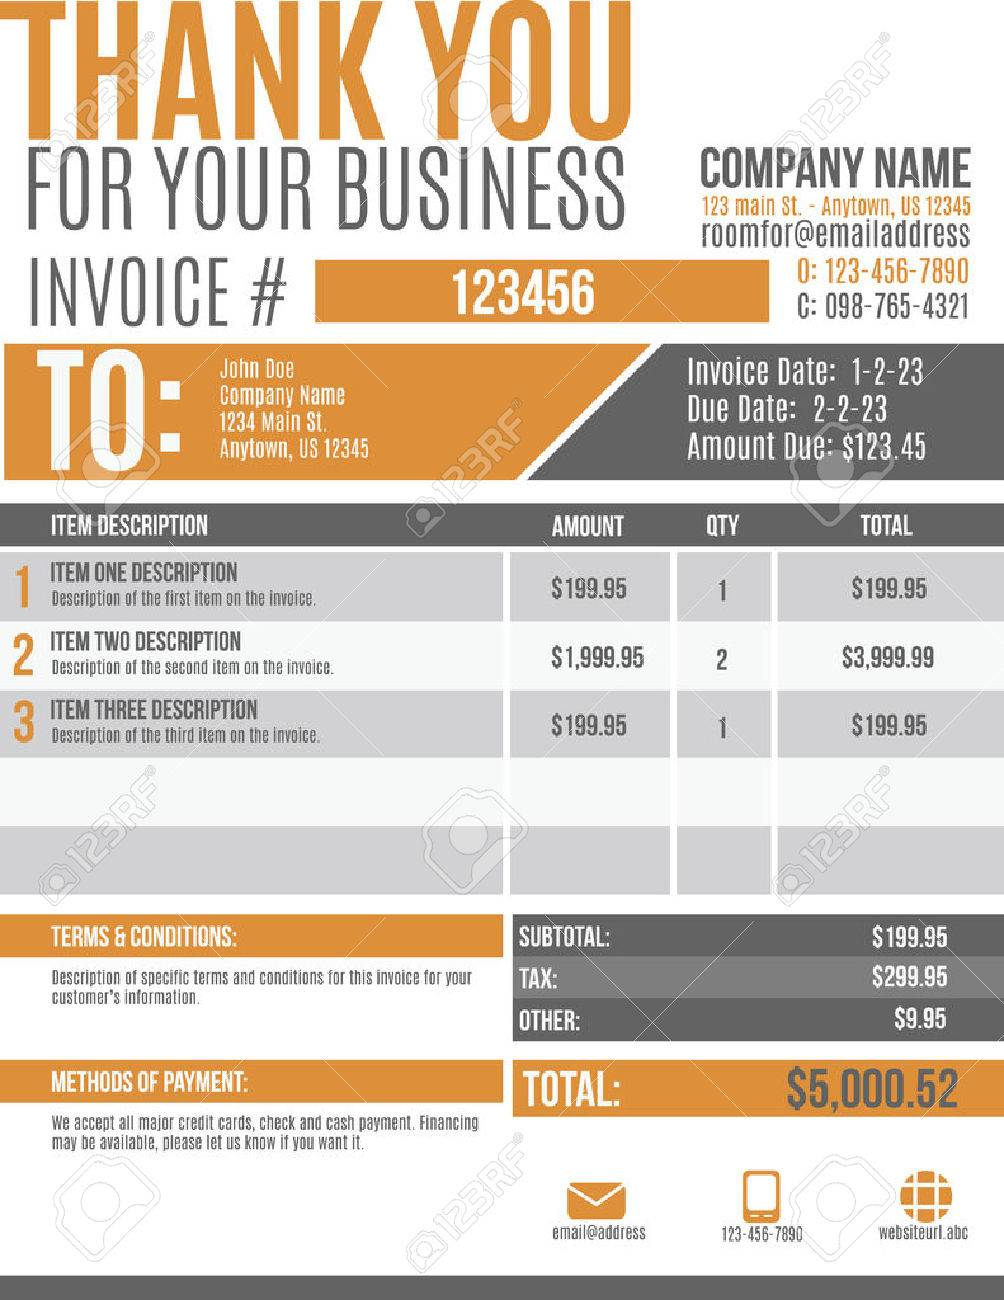 cool invoice template free – notators, Invoice templates